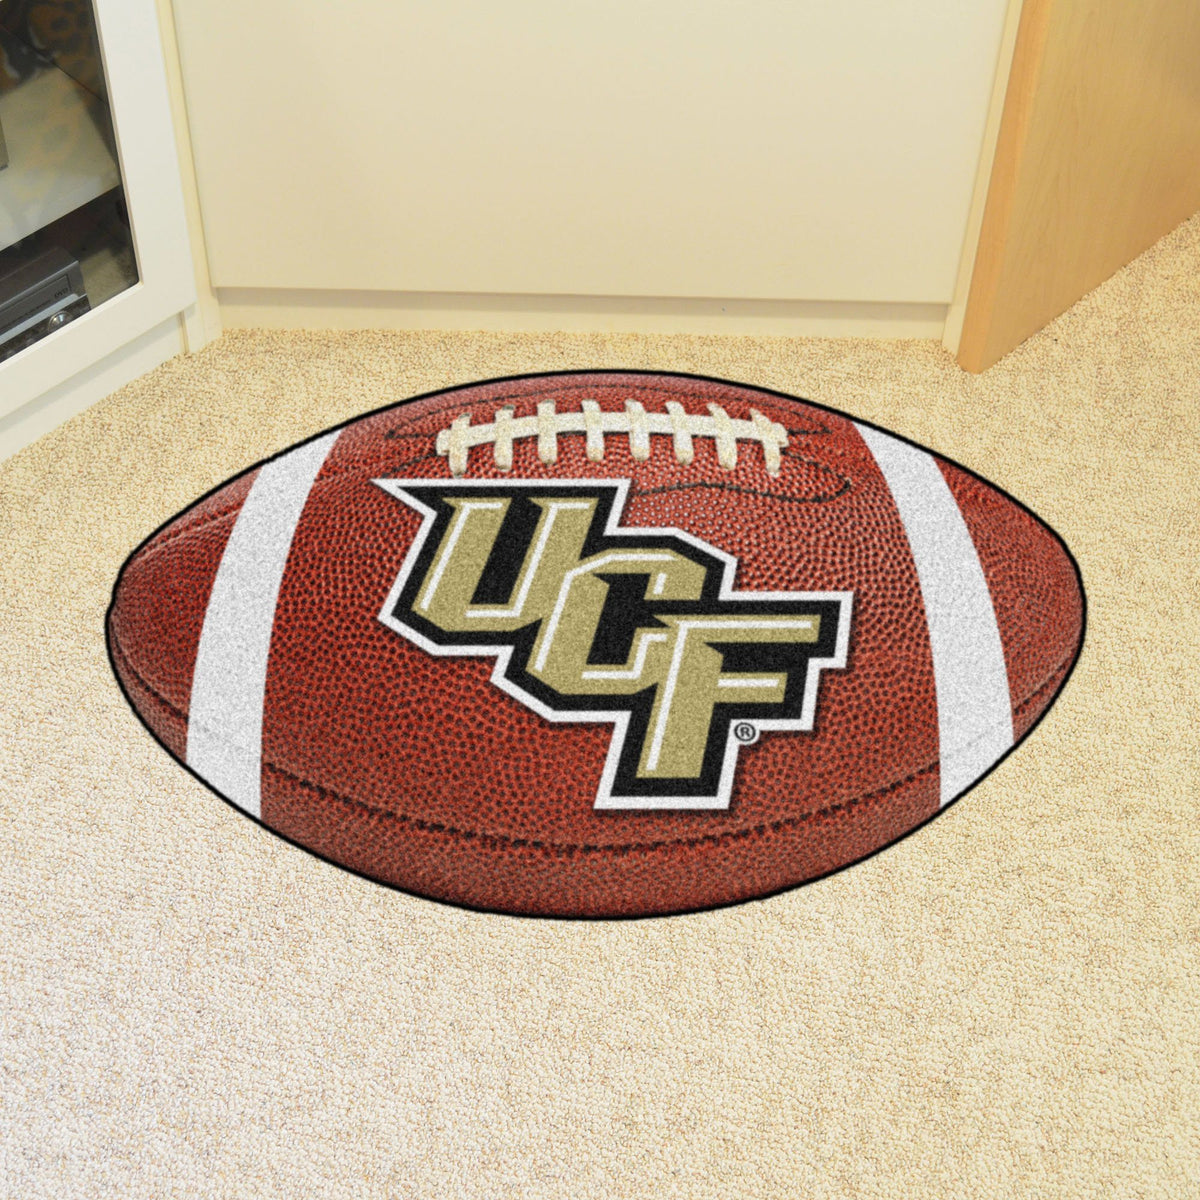 Collegiate - Football Mat: A - K Collegiate Mats, Rectangular Mats, Football Mat, Collegiate, Home Fan Mats Central Florida